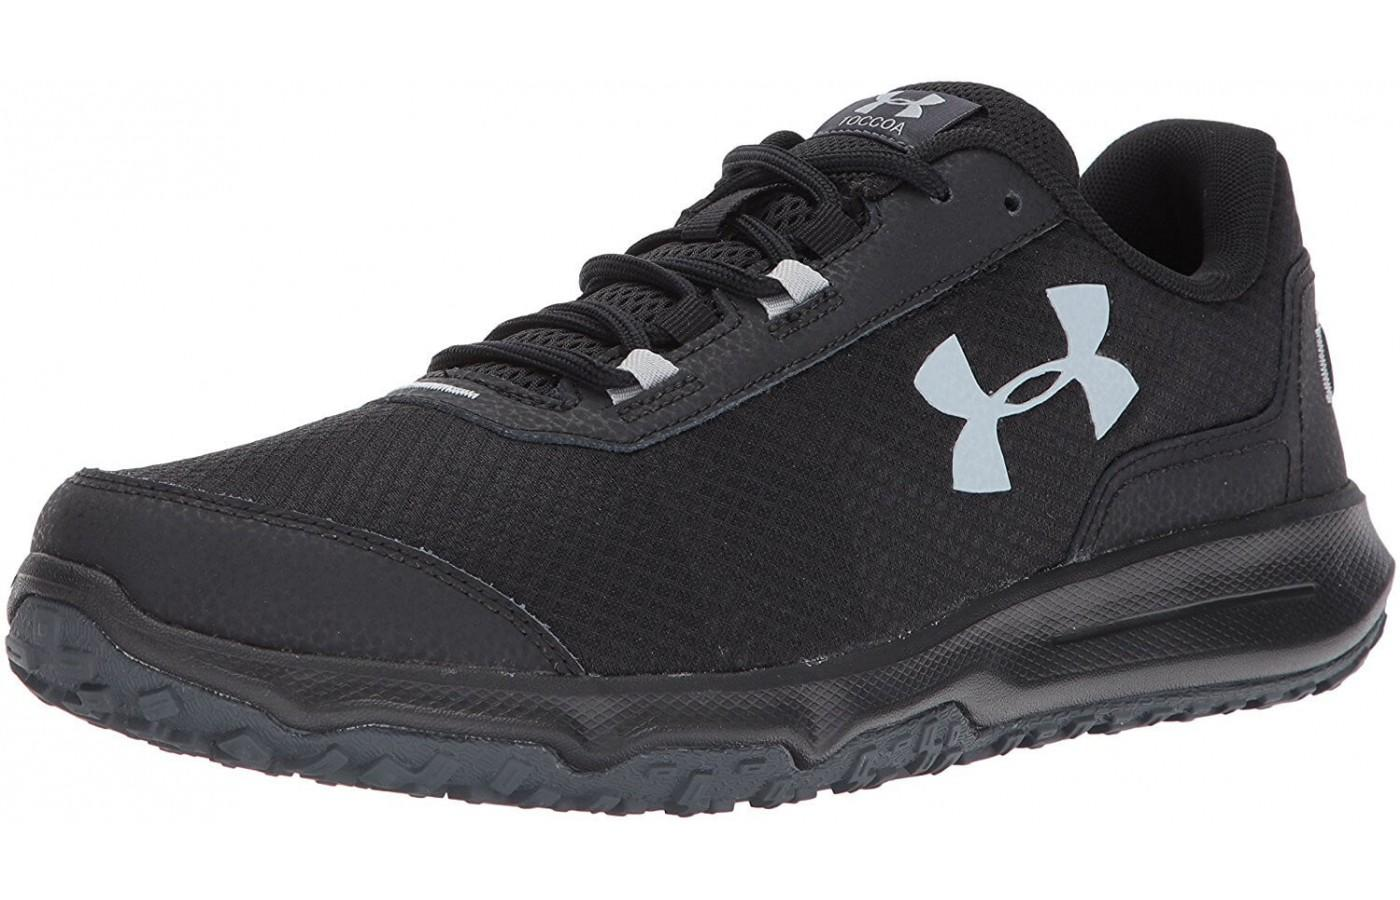 The Under Armour Toccoa features a high build quality and terrific performance.